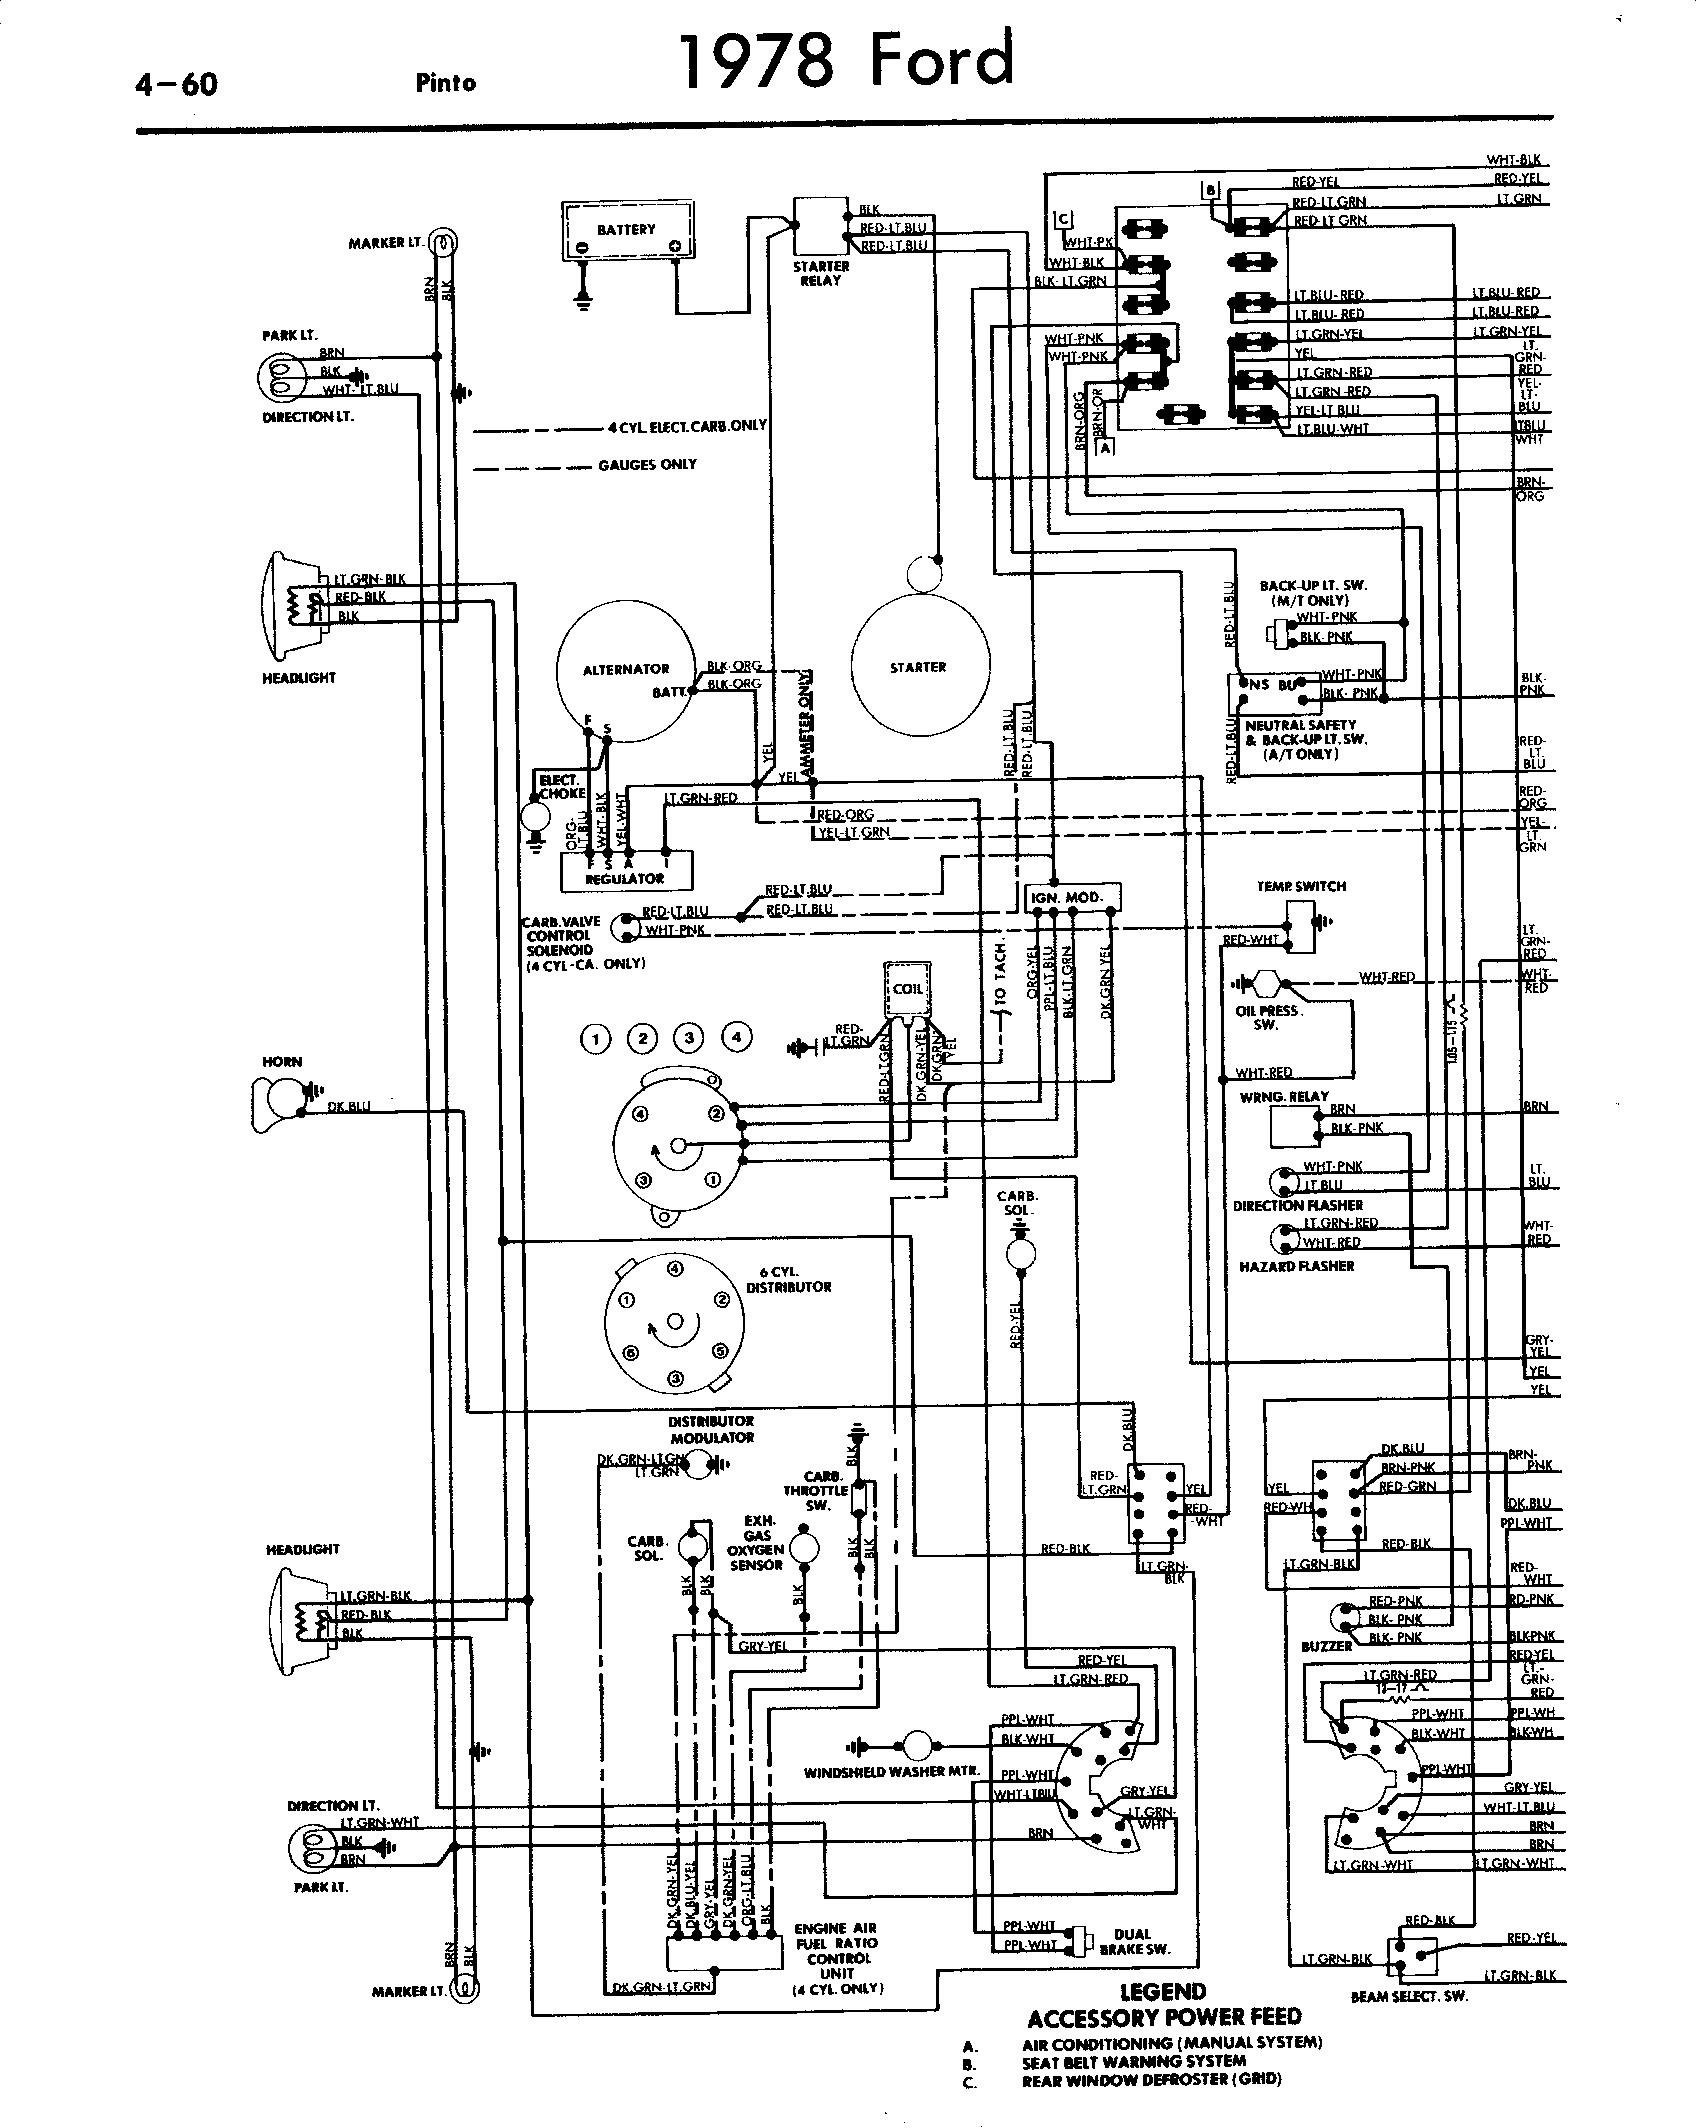 1979 Ford Pinto Ignition Wiring Diagram How To Wire Duraspark Example Electrical Circuit U2022 Rh Labs Labs4 Fun Distributor